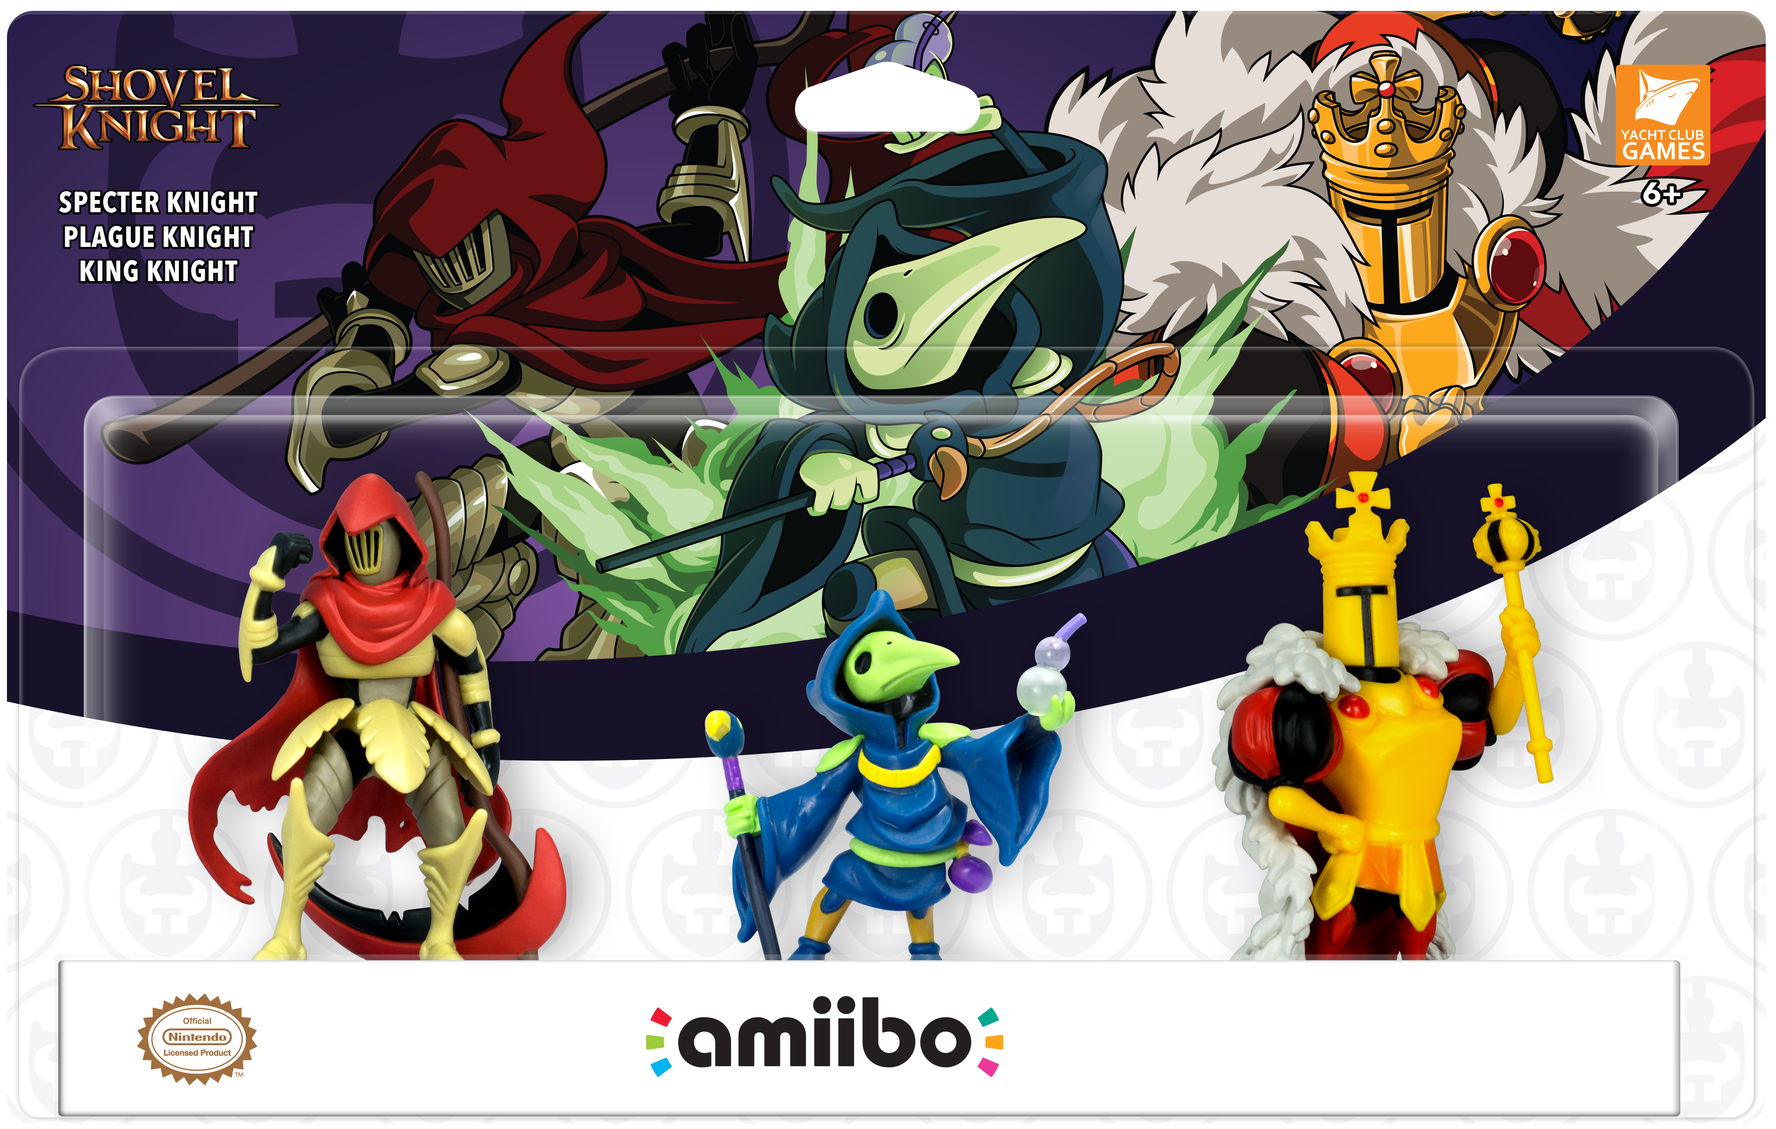 New Shovel Knight amiibo triple pack announced